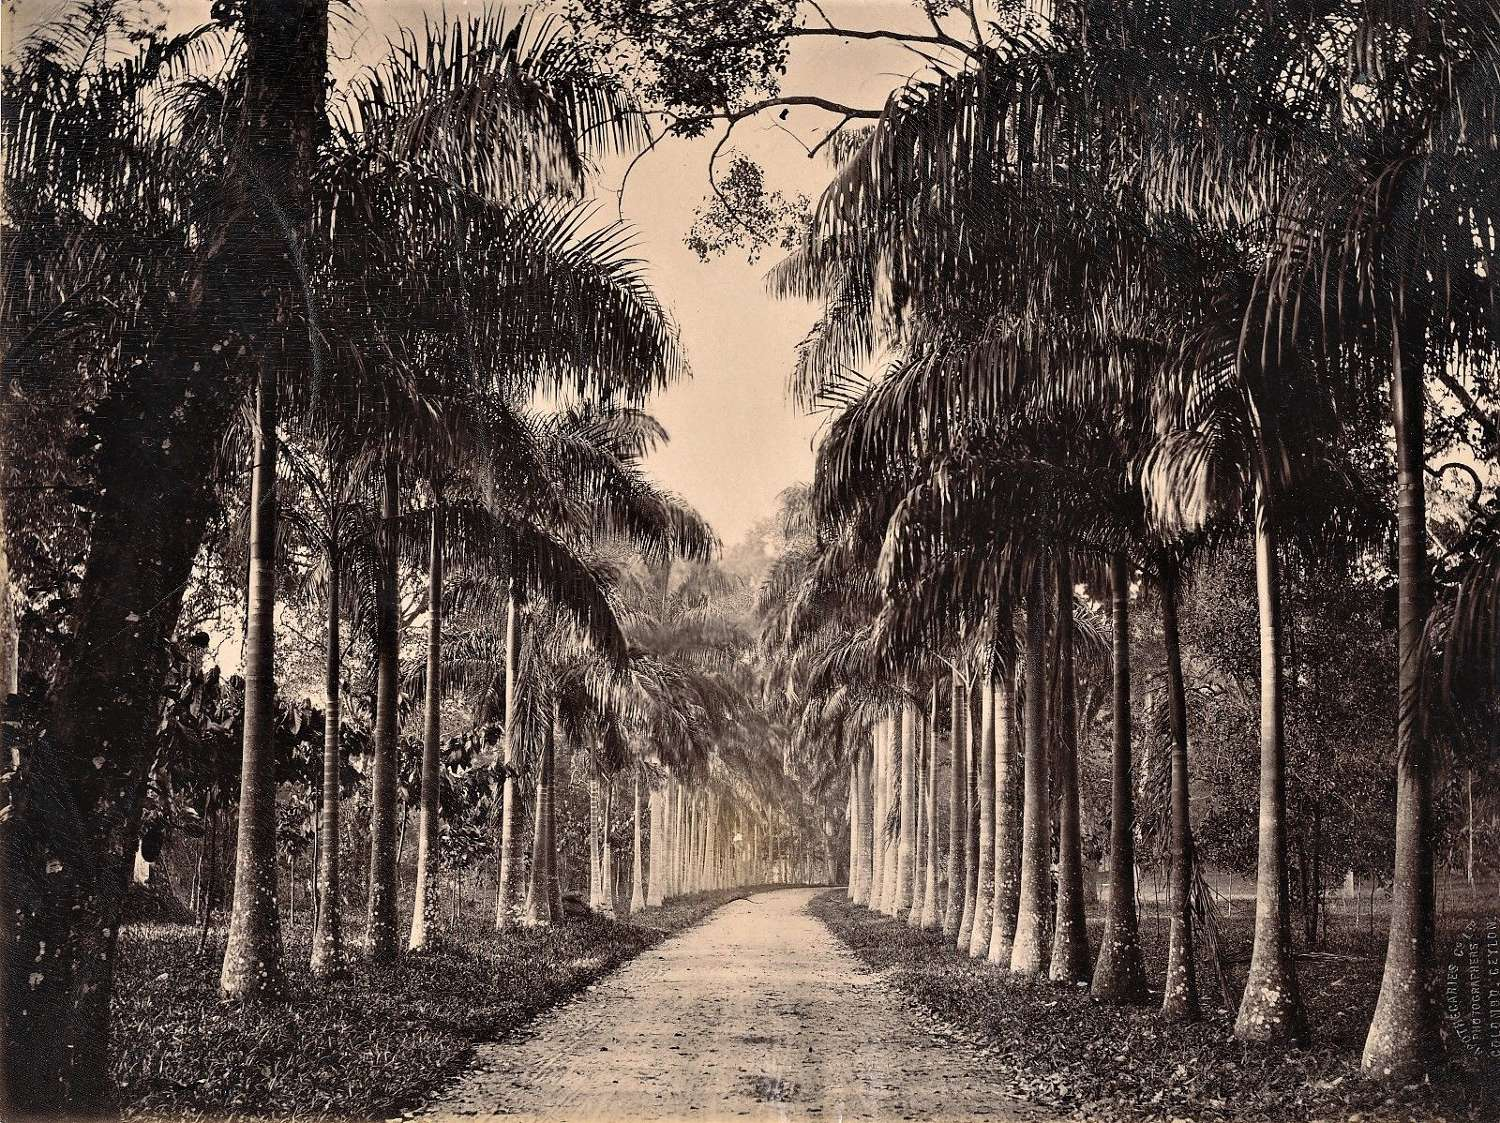 An Avenue of Palm TreesCeylon By Apothecaries & Co Ltd C1880